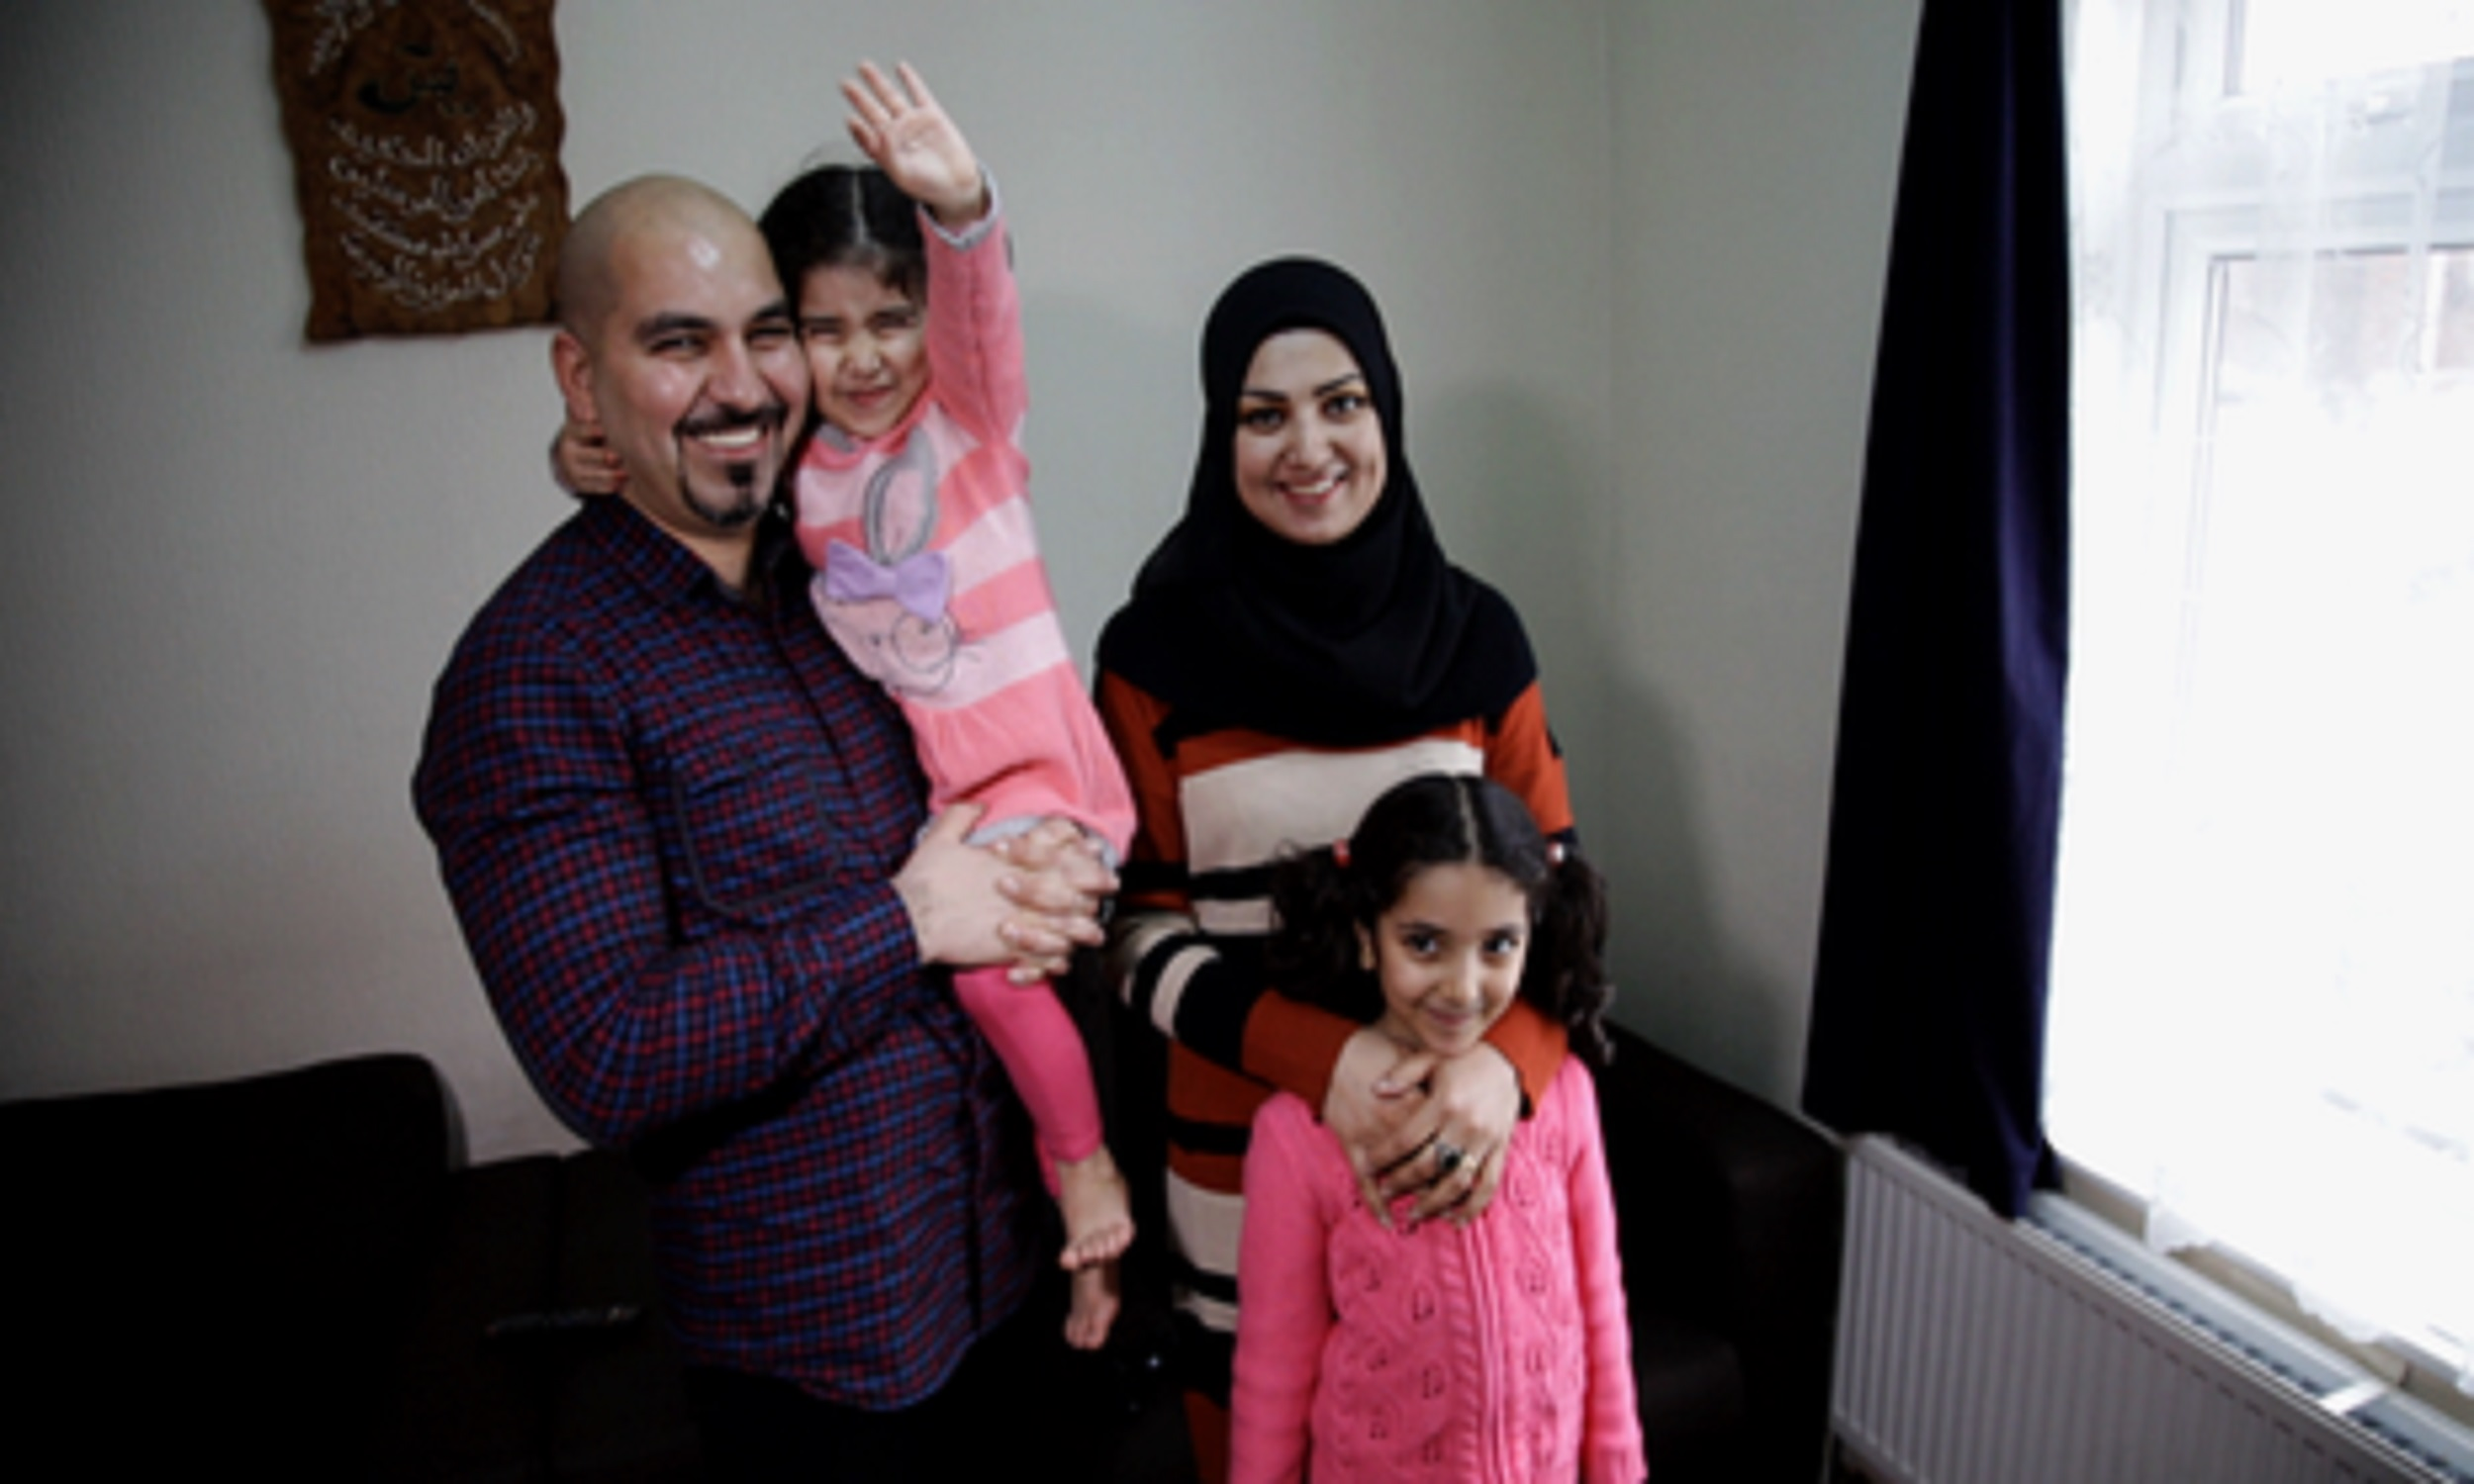 Haider, a refugee from Iraq with his wife and two daughters in their living room